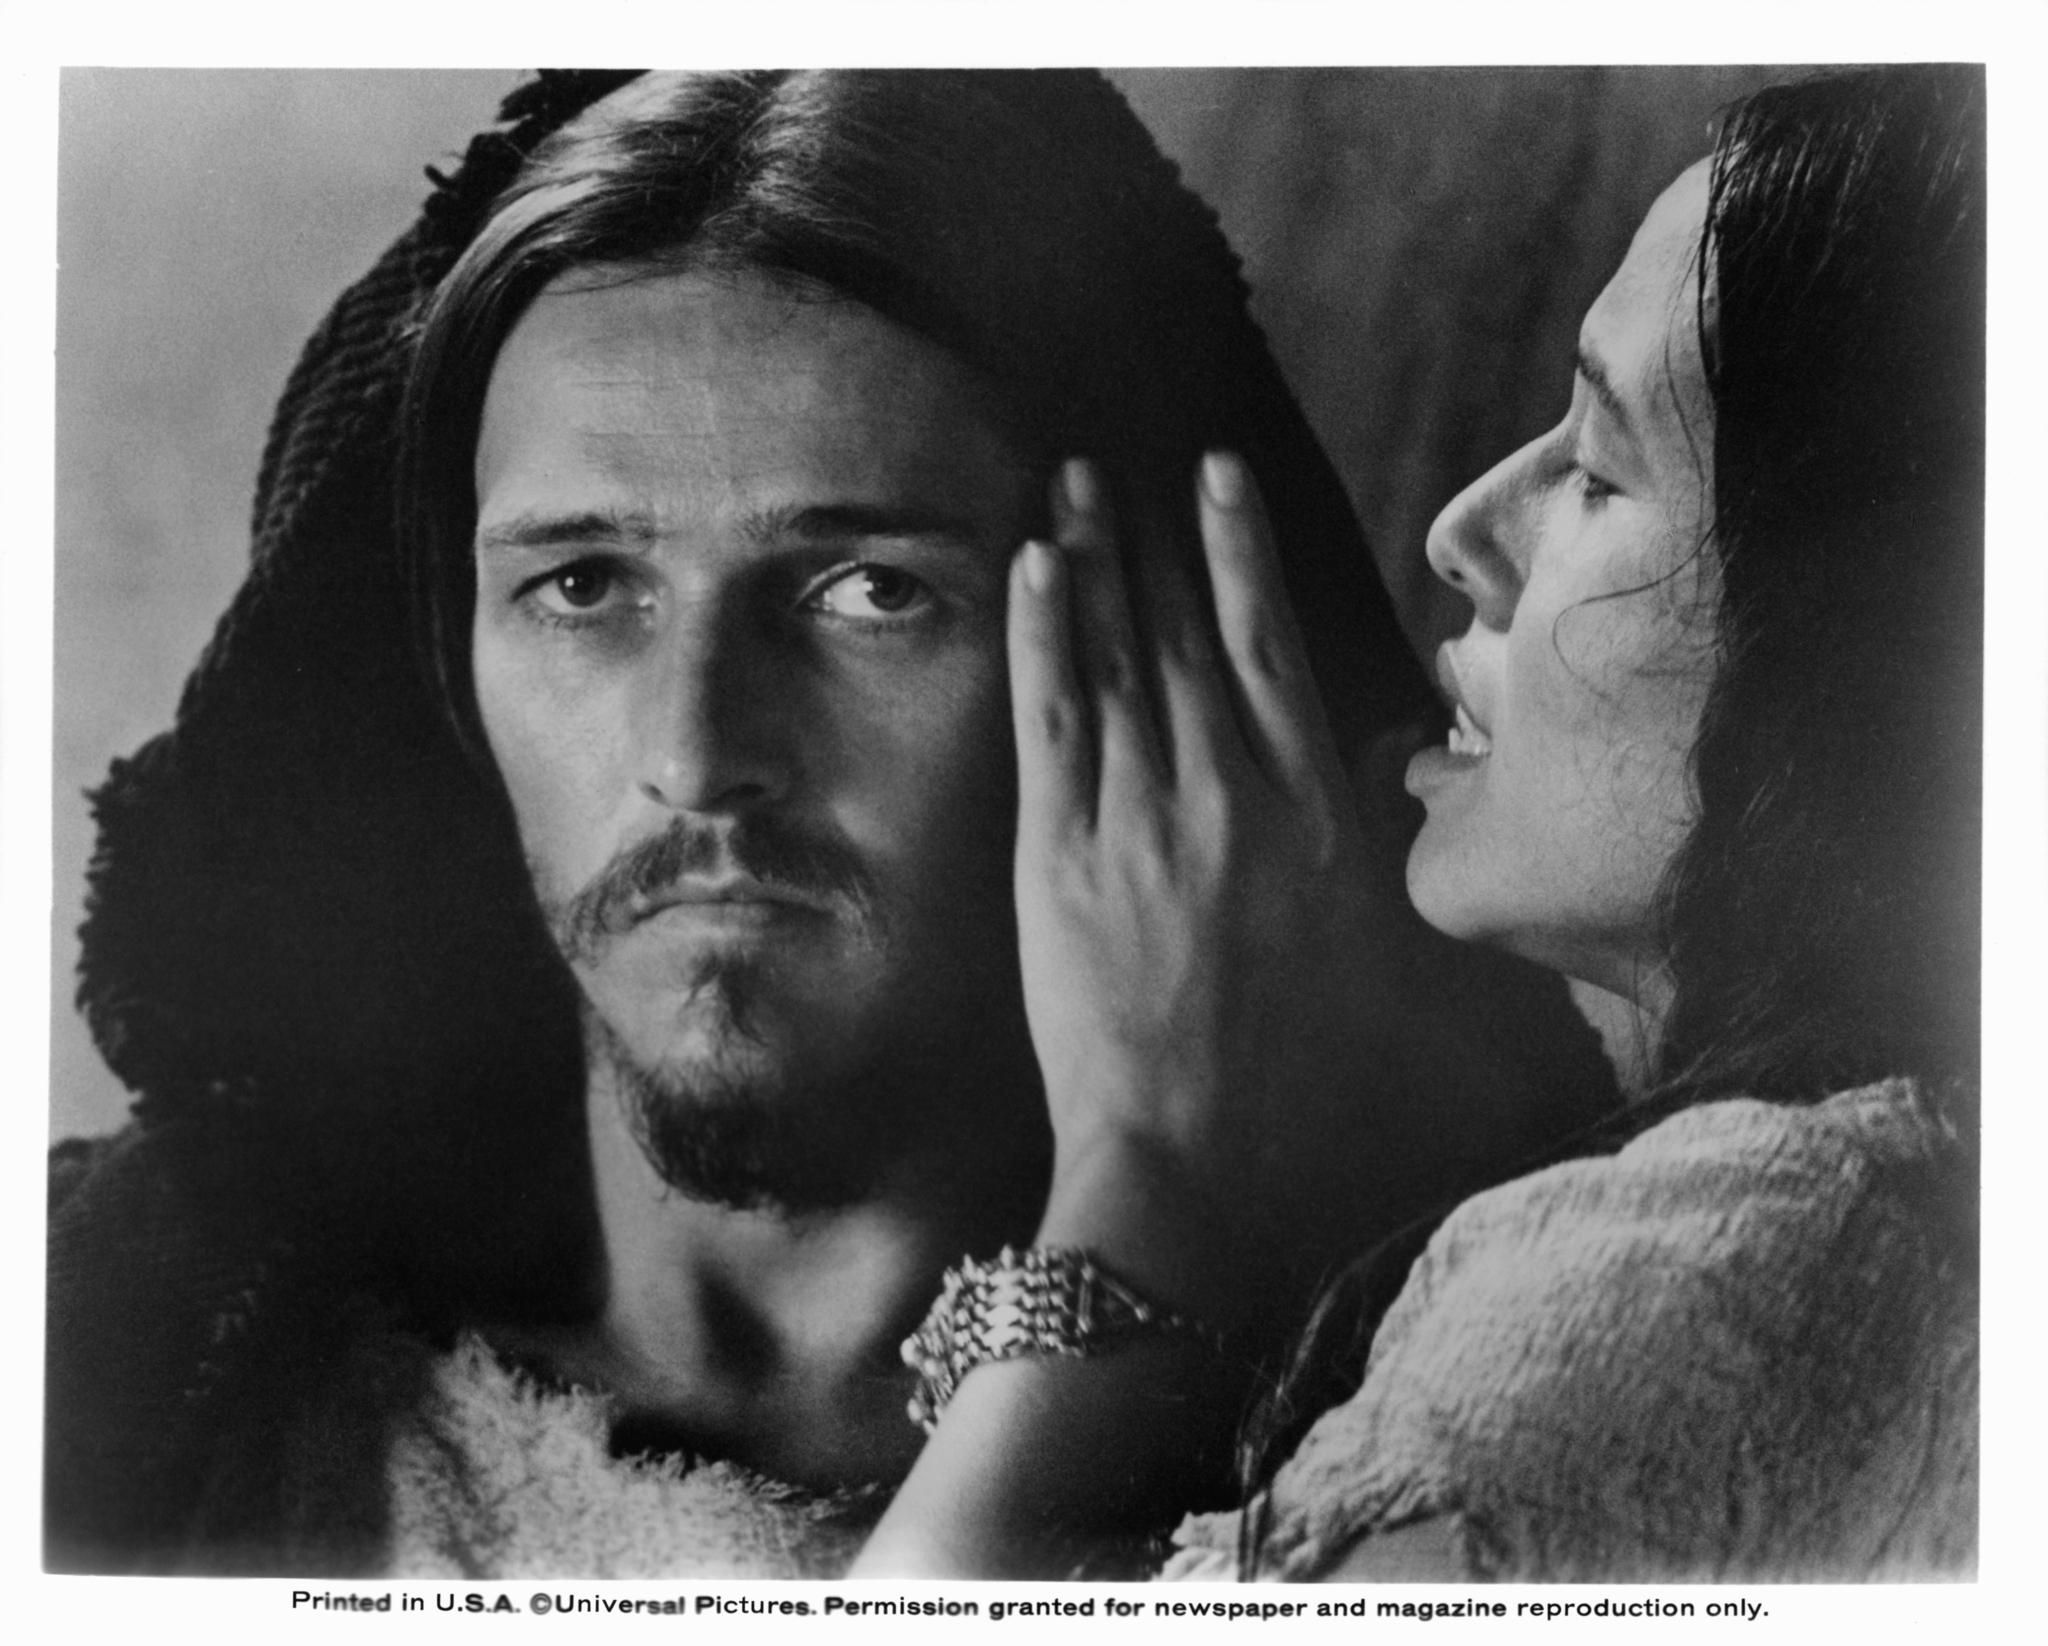 ted neeley wifeted neeley gethsemane, ted neeley jesus, ted neeley 2016, ted neeley hosanna, ted neeley songs, ted neeley faith, ted neeley actor, ted neeley wikipedia, ted neeley jesus christ superstar, ted neeley i only want to say, ted neeley youtube, ted neeley gethsemane lyrics, ted neeley music, ted neeley discography, ted neeley, ted neeley django, ted neeley django unchained, ted neeley wife, ted neeley wiki, ted neeley imdb